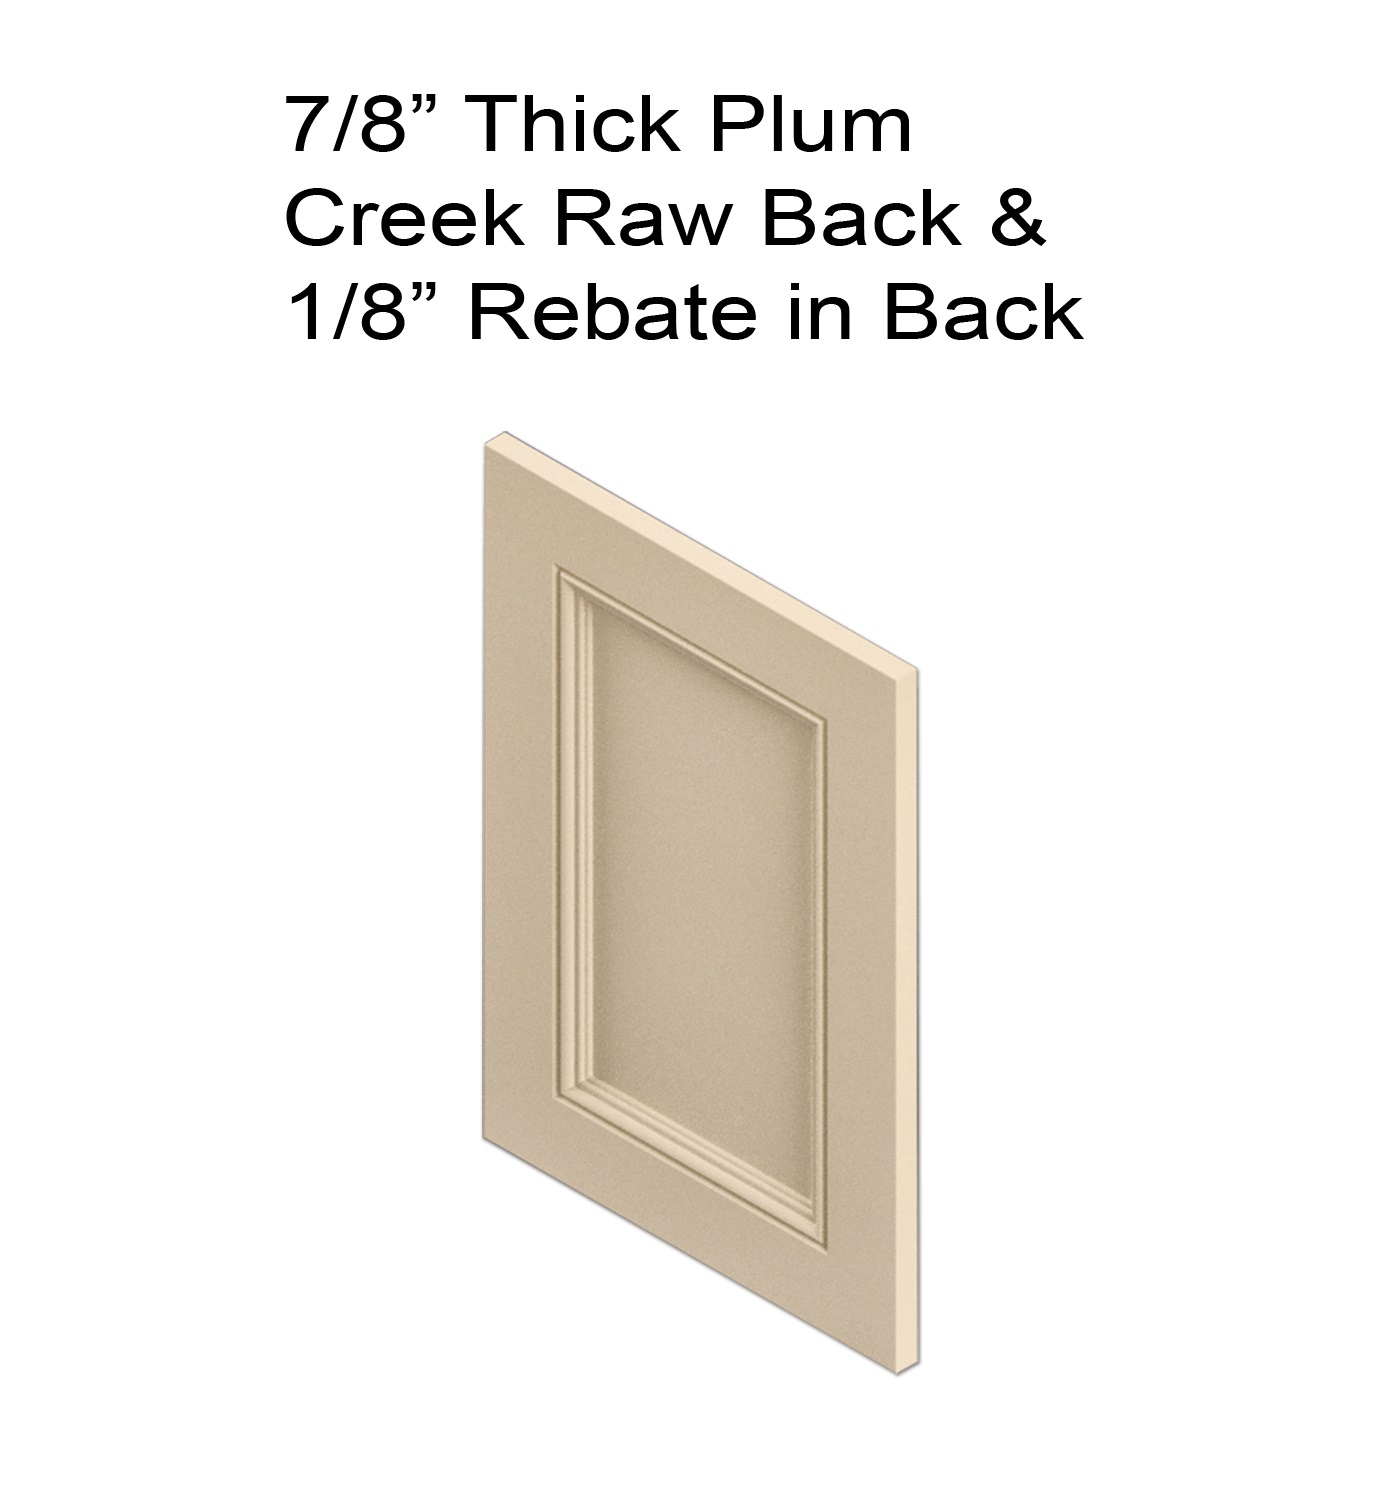 "Thick Plum Creek Raw Back & 1-8"" Rebate in Back"